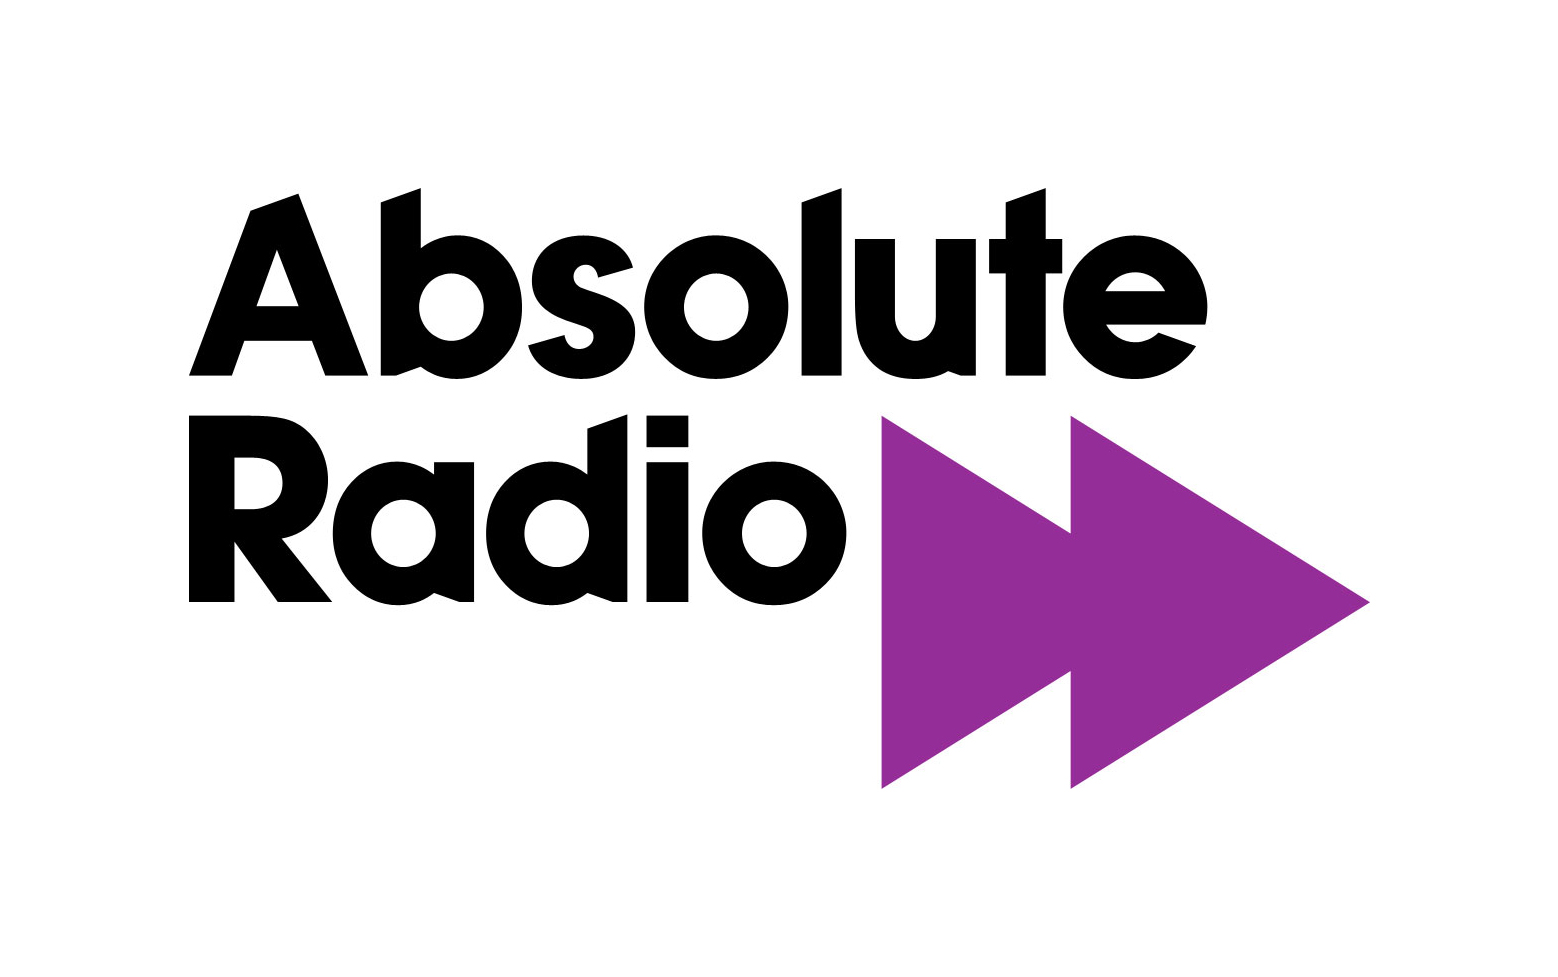 Absolute-Radio-logo.jpg